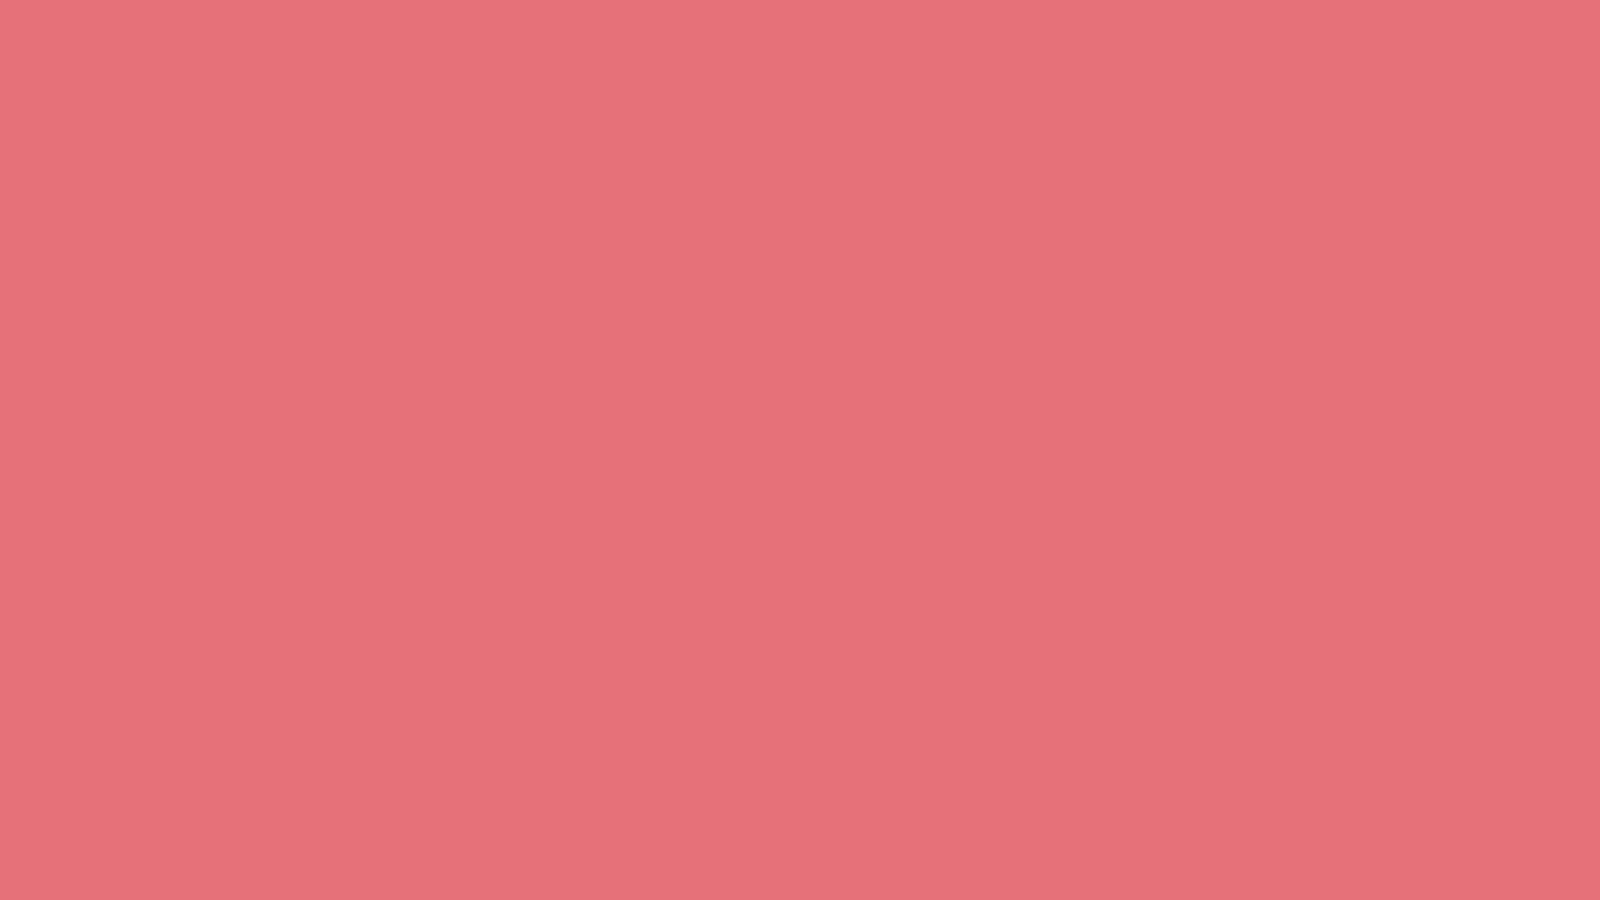 1600x900 Candy Pink Solid Color Background